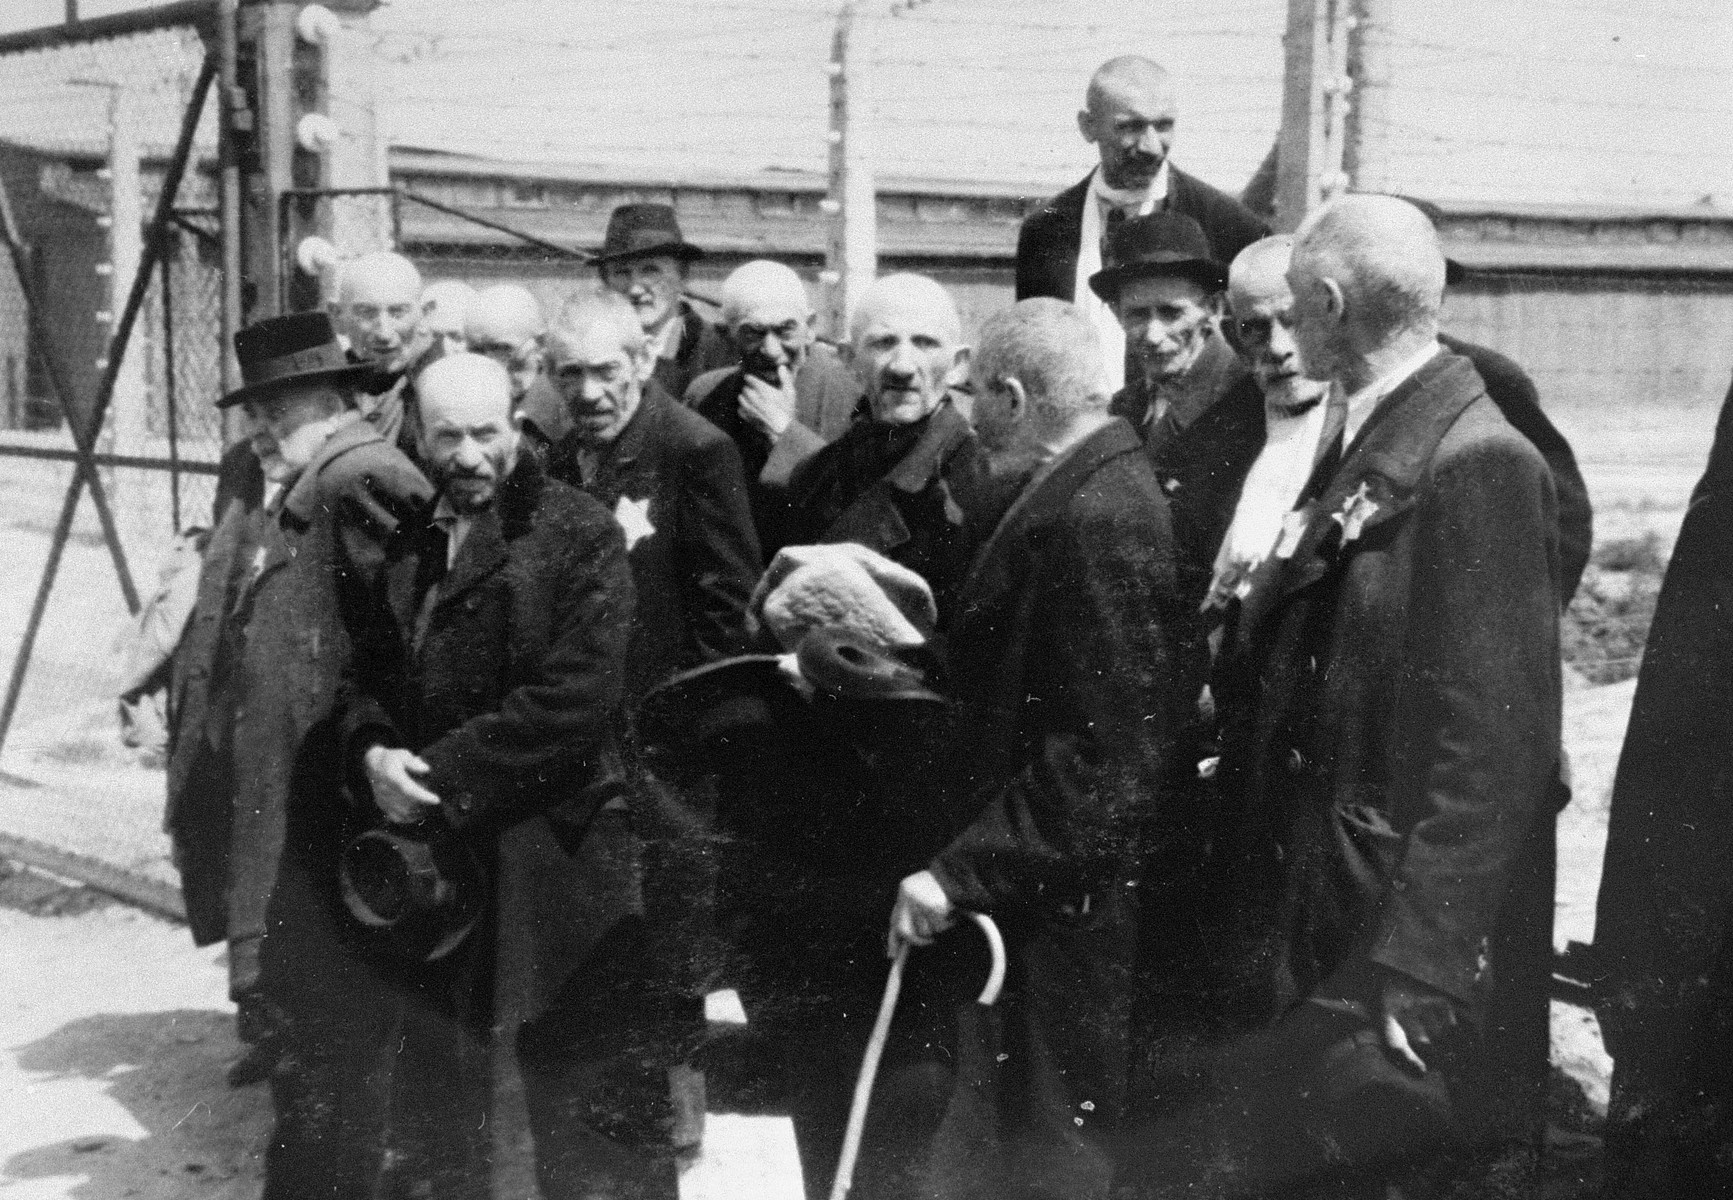 A group of elderly Jewish men from Subcarpathian Rus who have been selected for death, wait to be taken to the gas chambers.